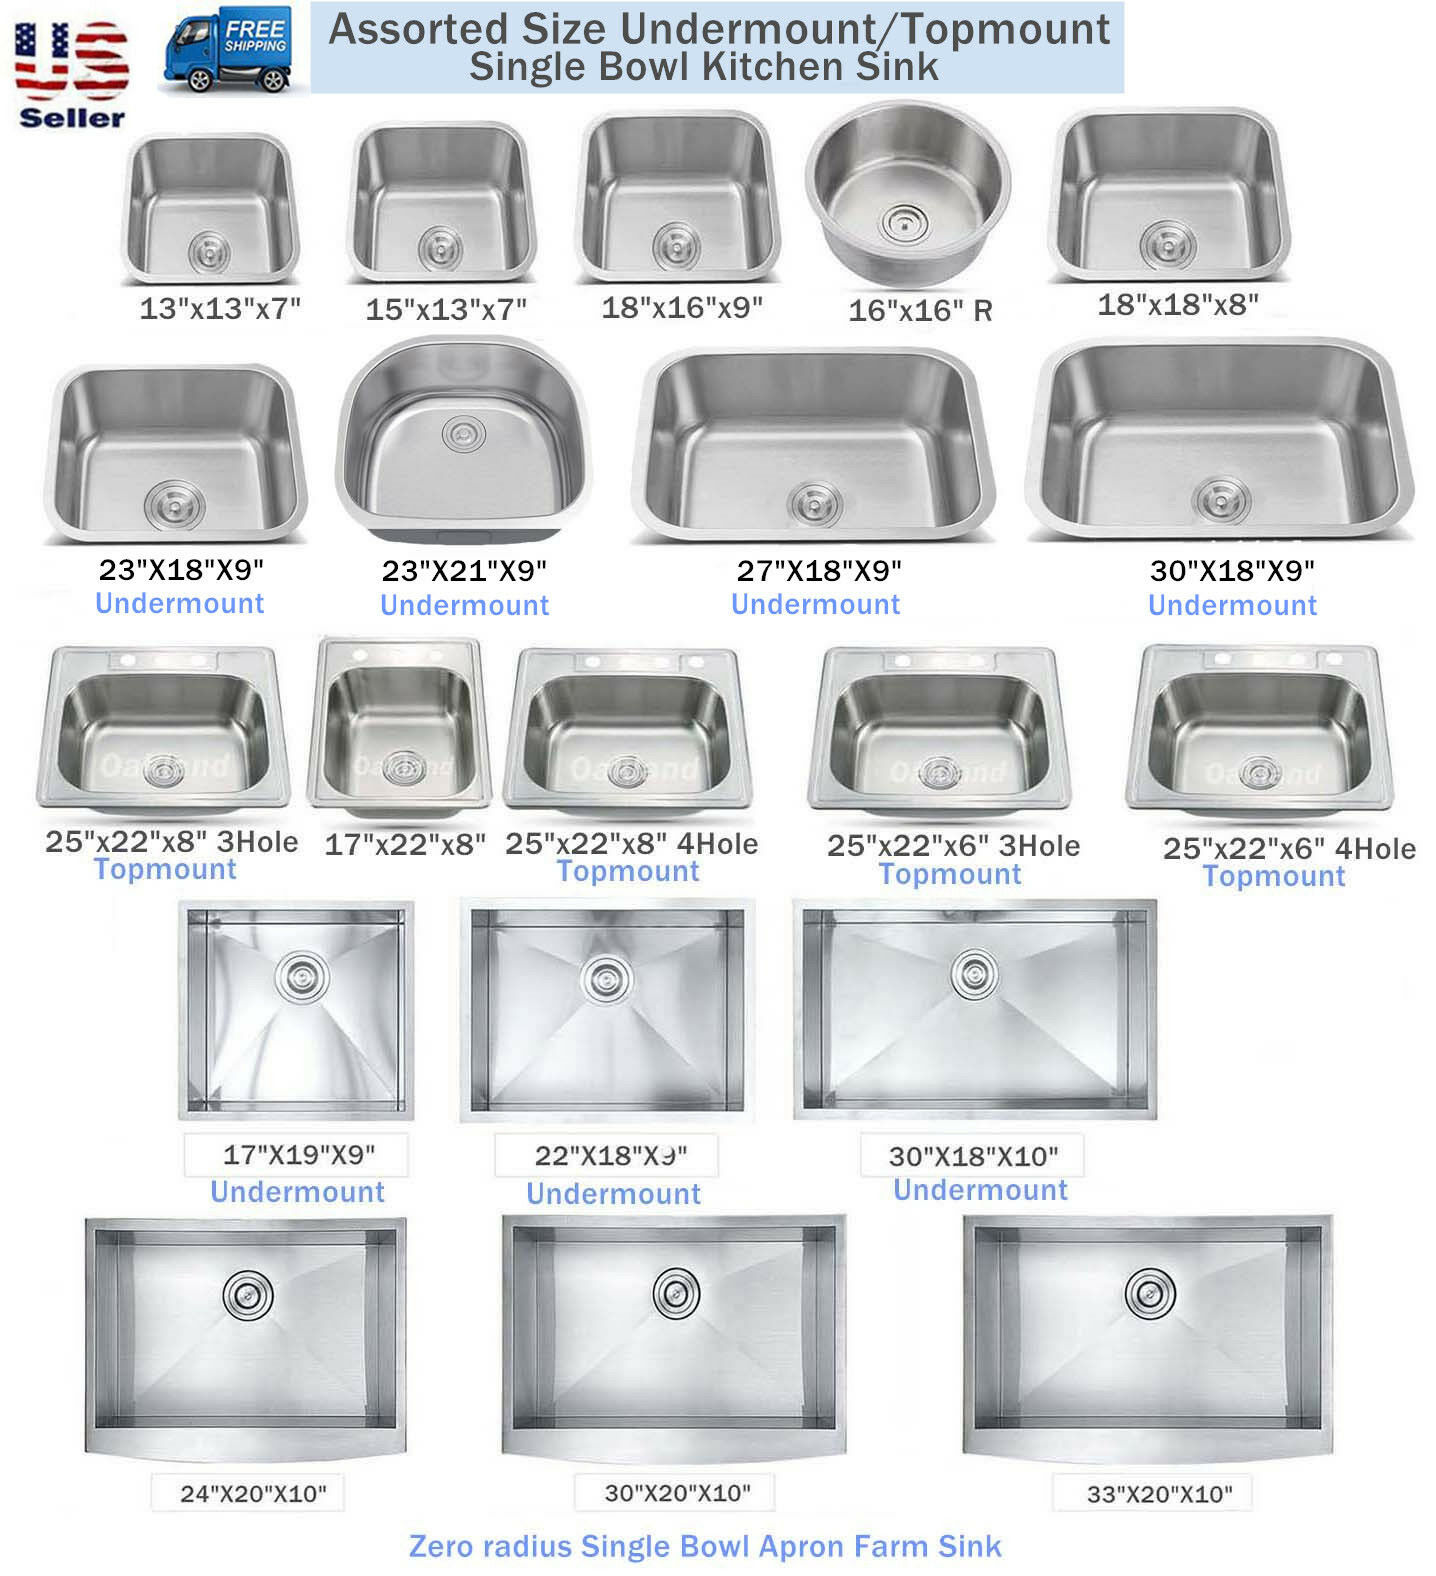 New Topmount / Undermount Stainless Steel Single Bowl Kitche